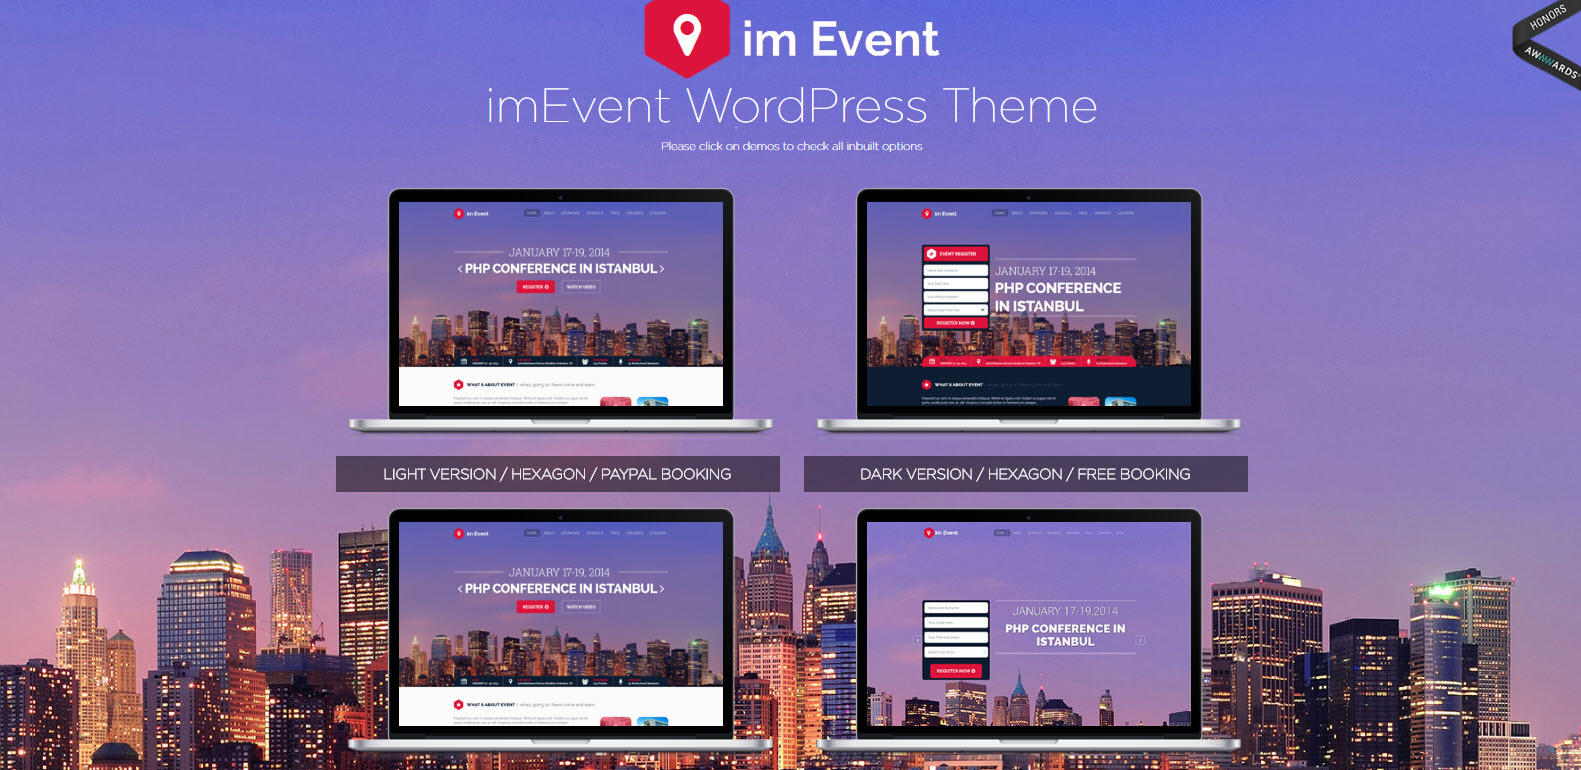 eventime theme - event wordpress theme - medical wordpress theme - health wordpress theme - finance wordpress theme